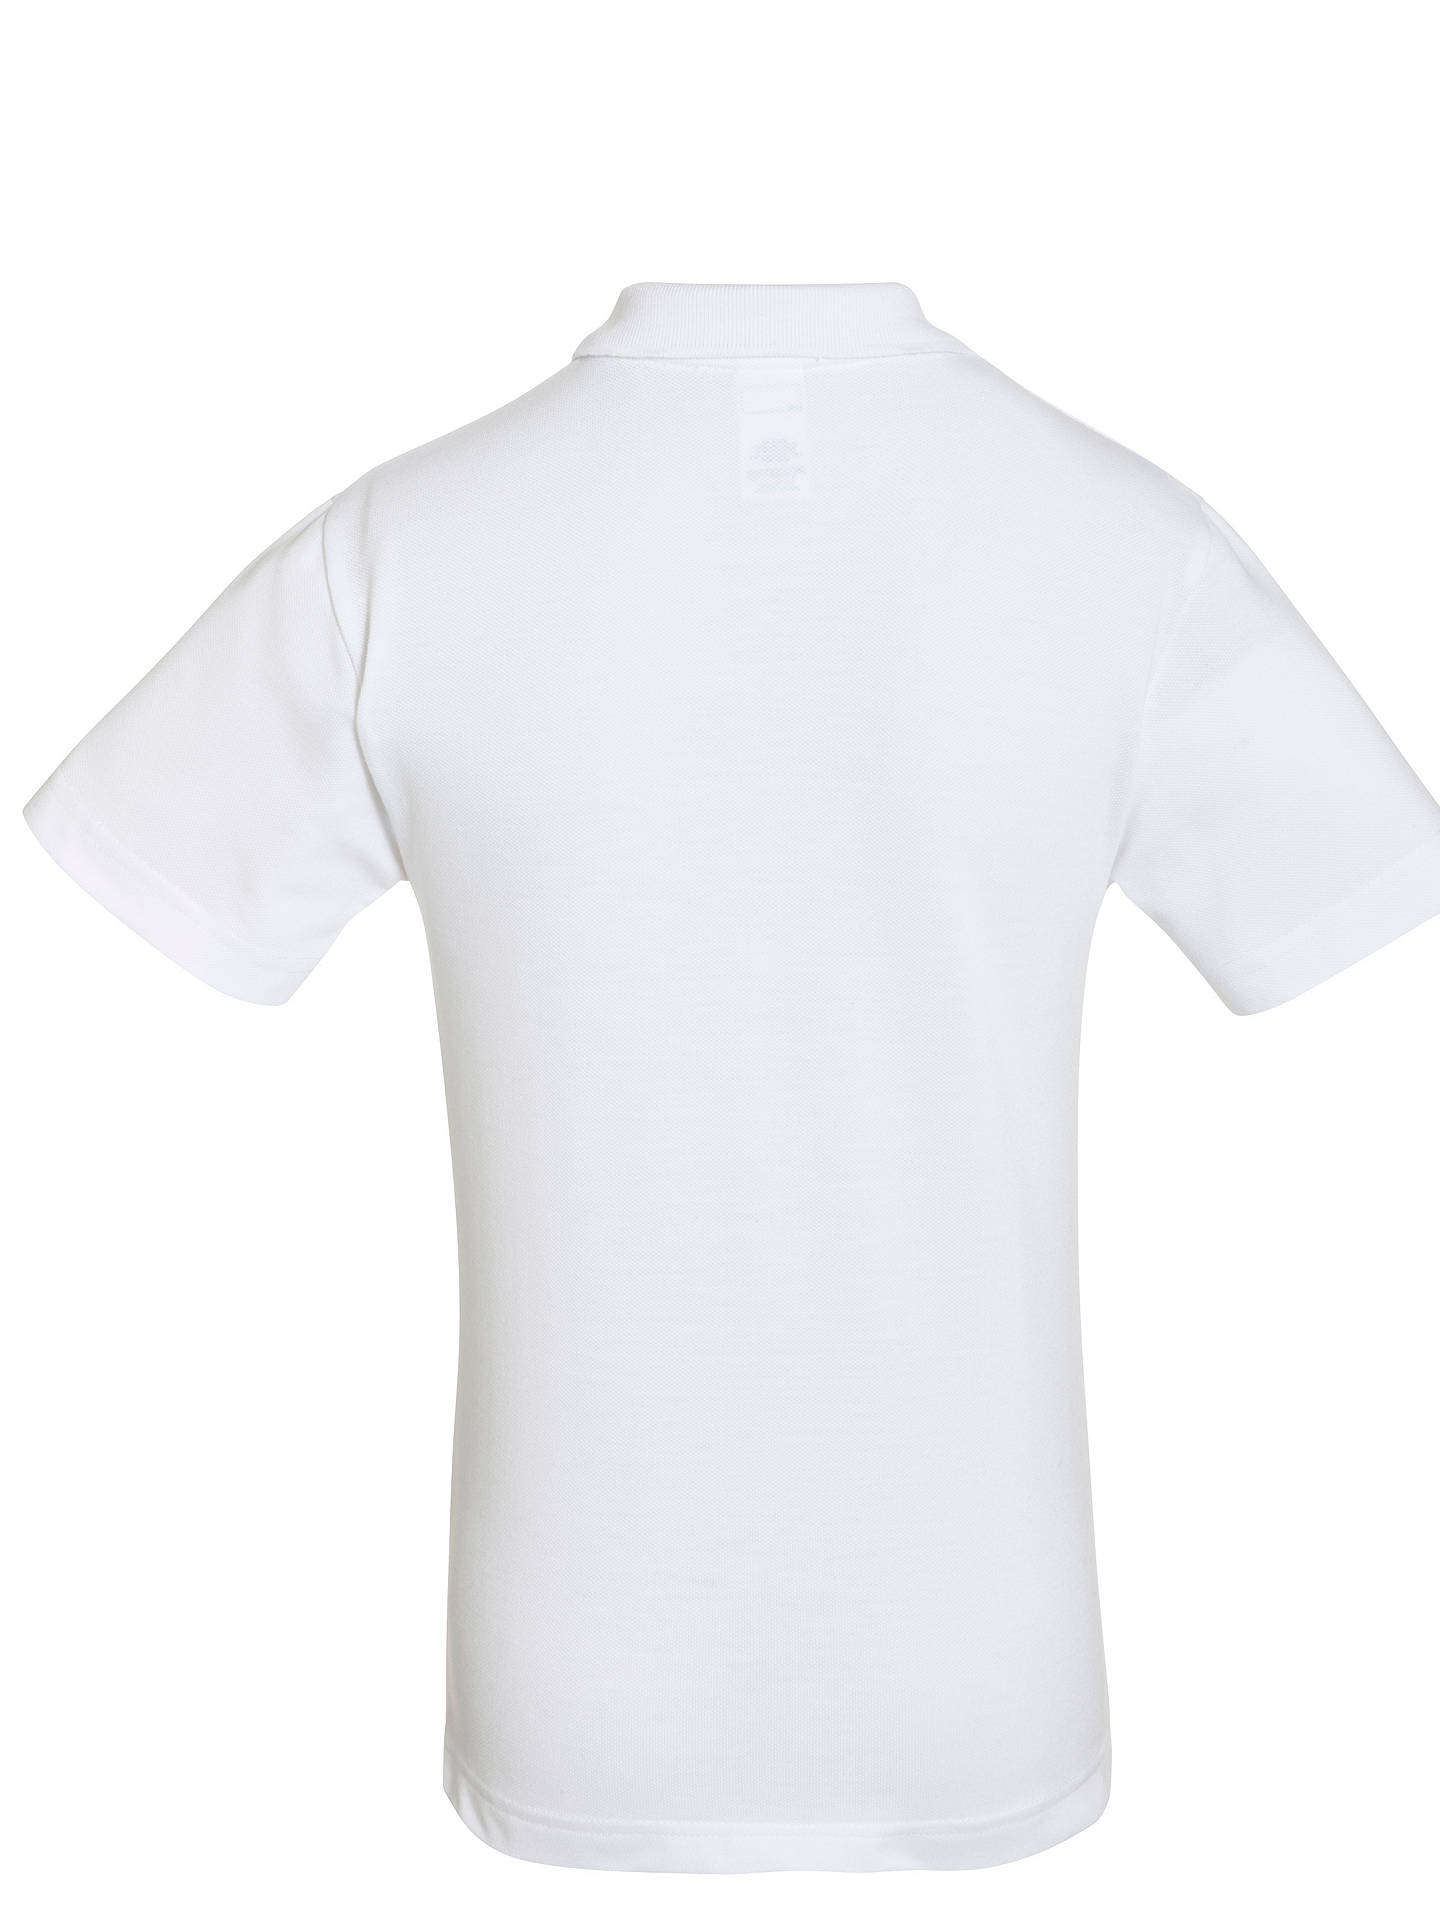 BuyForest Park Preparatory School Unisex Polo Shirt, White, 5-6 years Online at johnlewis.com